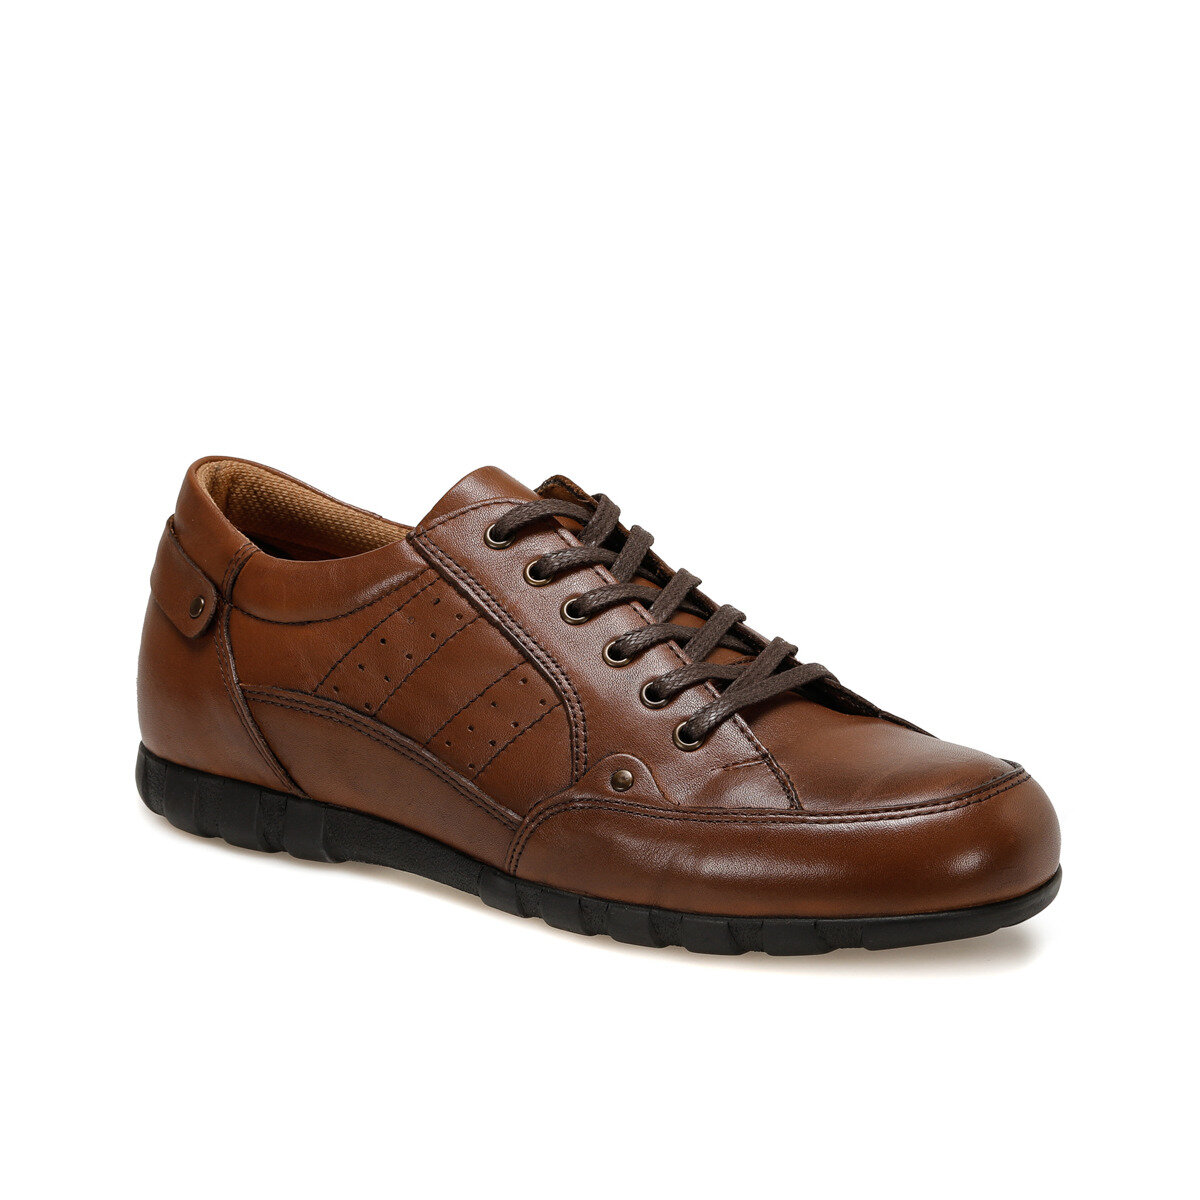 FLO NHT-02 Tan Male Casual Shoes Oxide